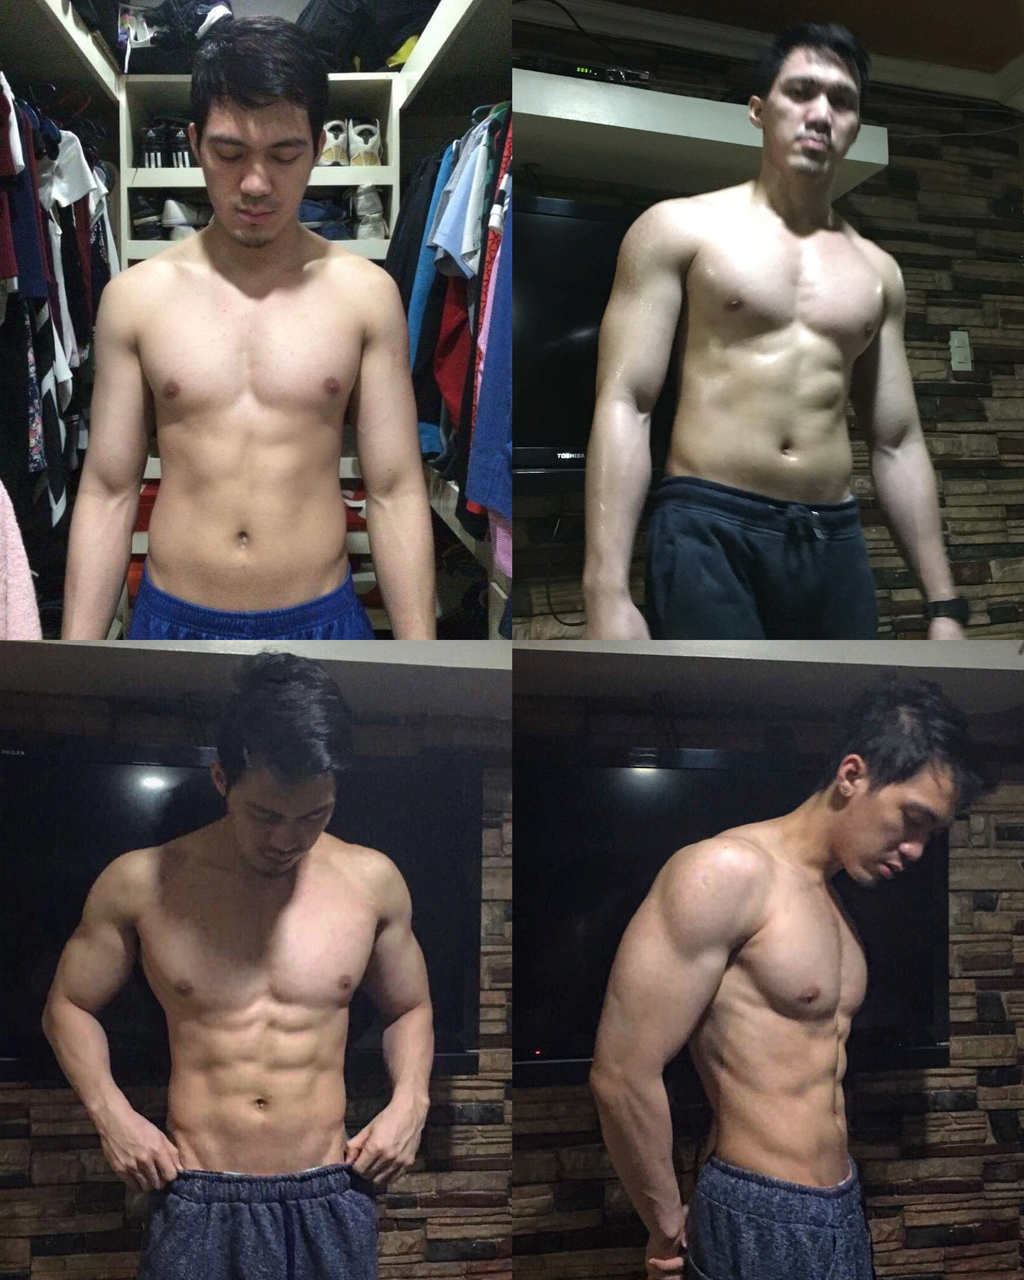 3-month cutting results. This is me after finding out the easiest way to transform your physique